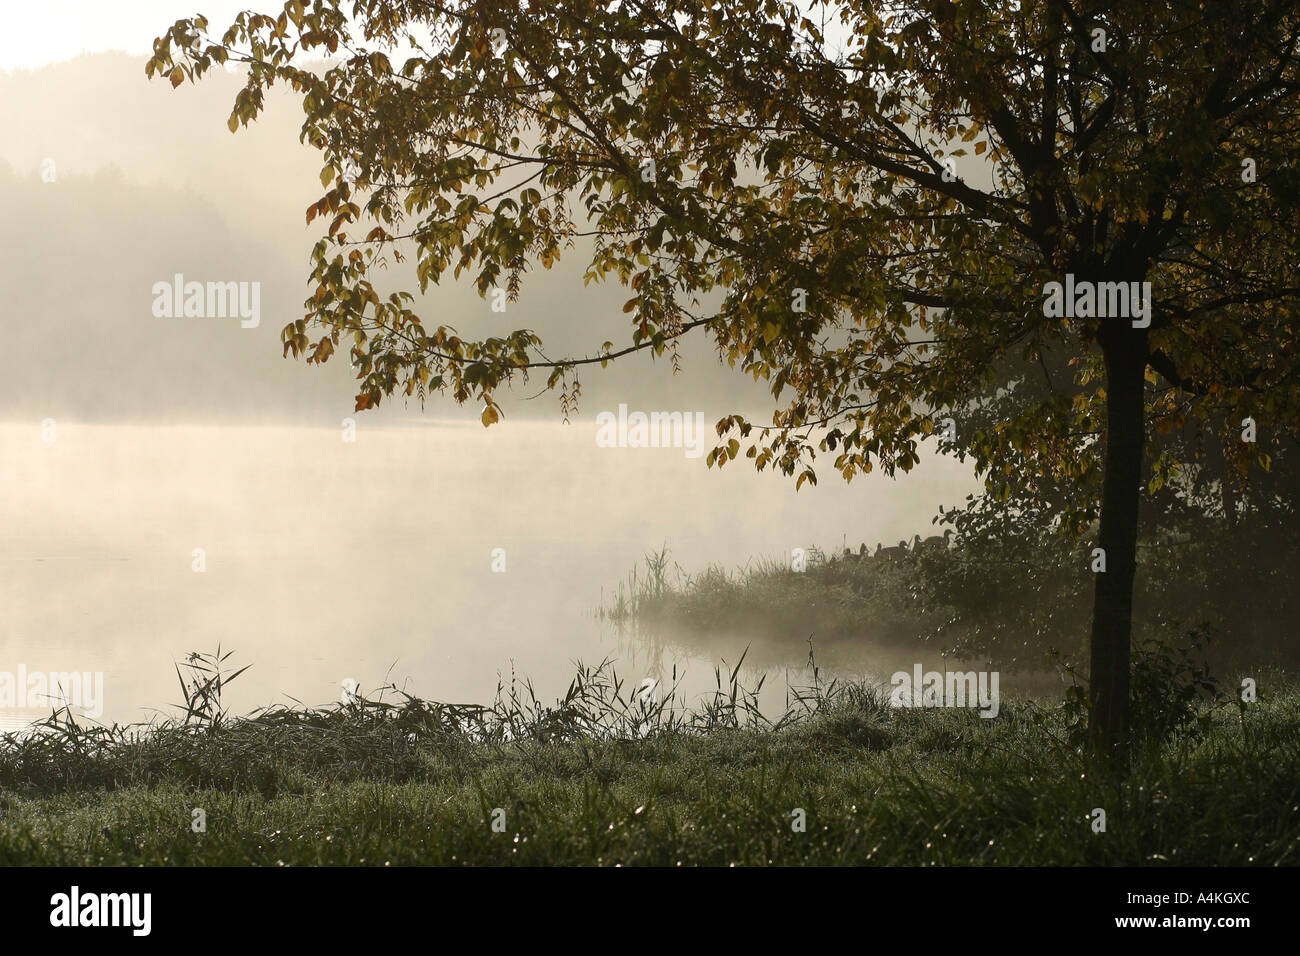 Tree at edge of misty pond - Stock Image